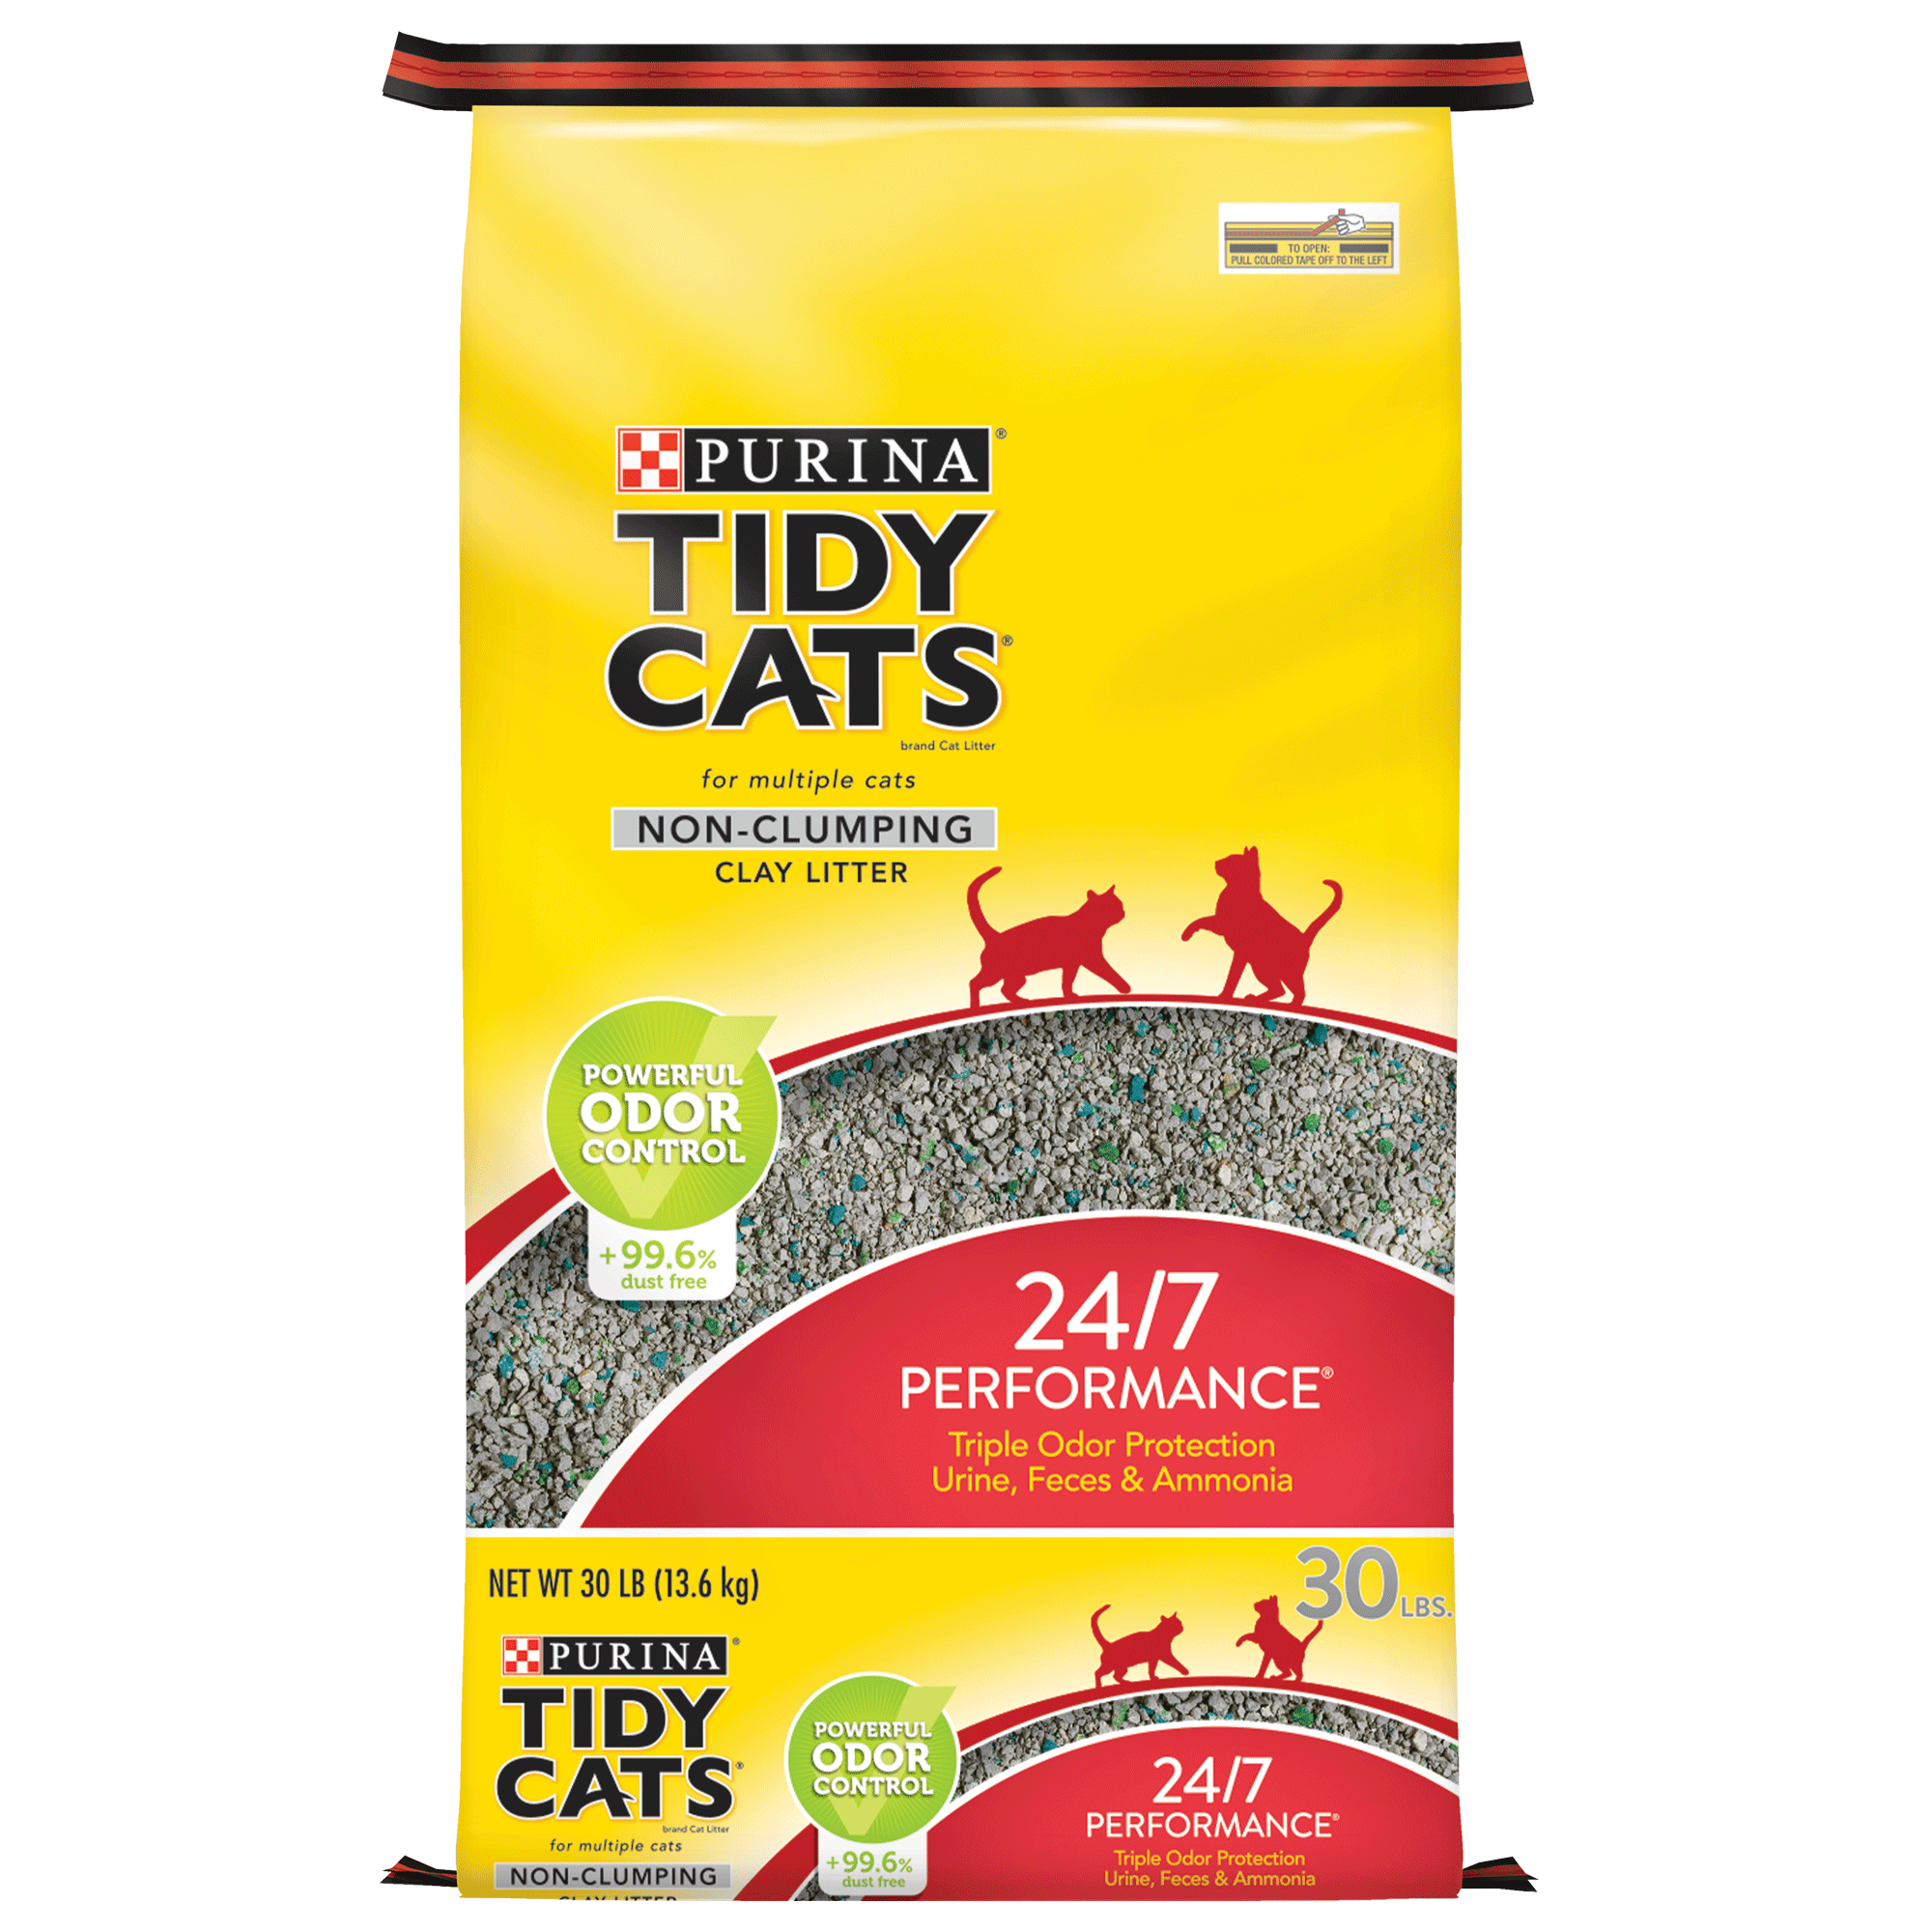 Purina Tidy Cats 24/7 Performance for Multiple Cats Non-Clumping Cat Litter, 30-lb